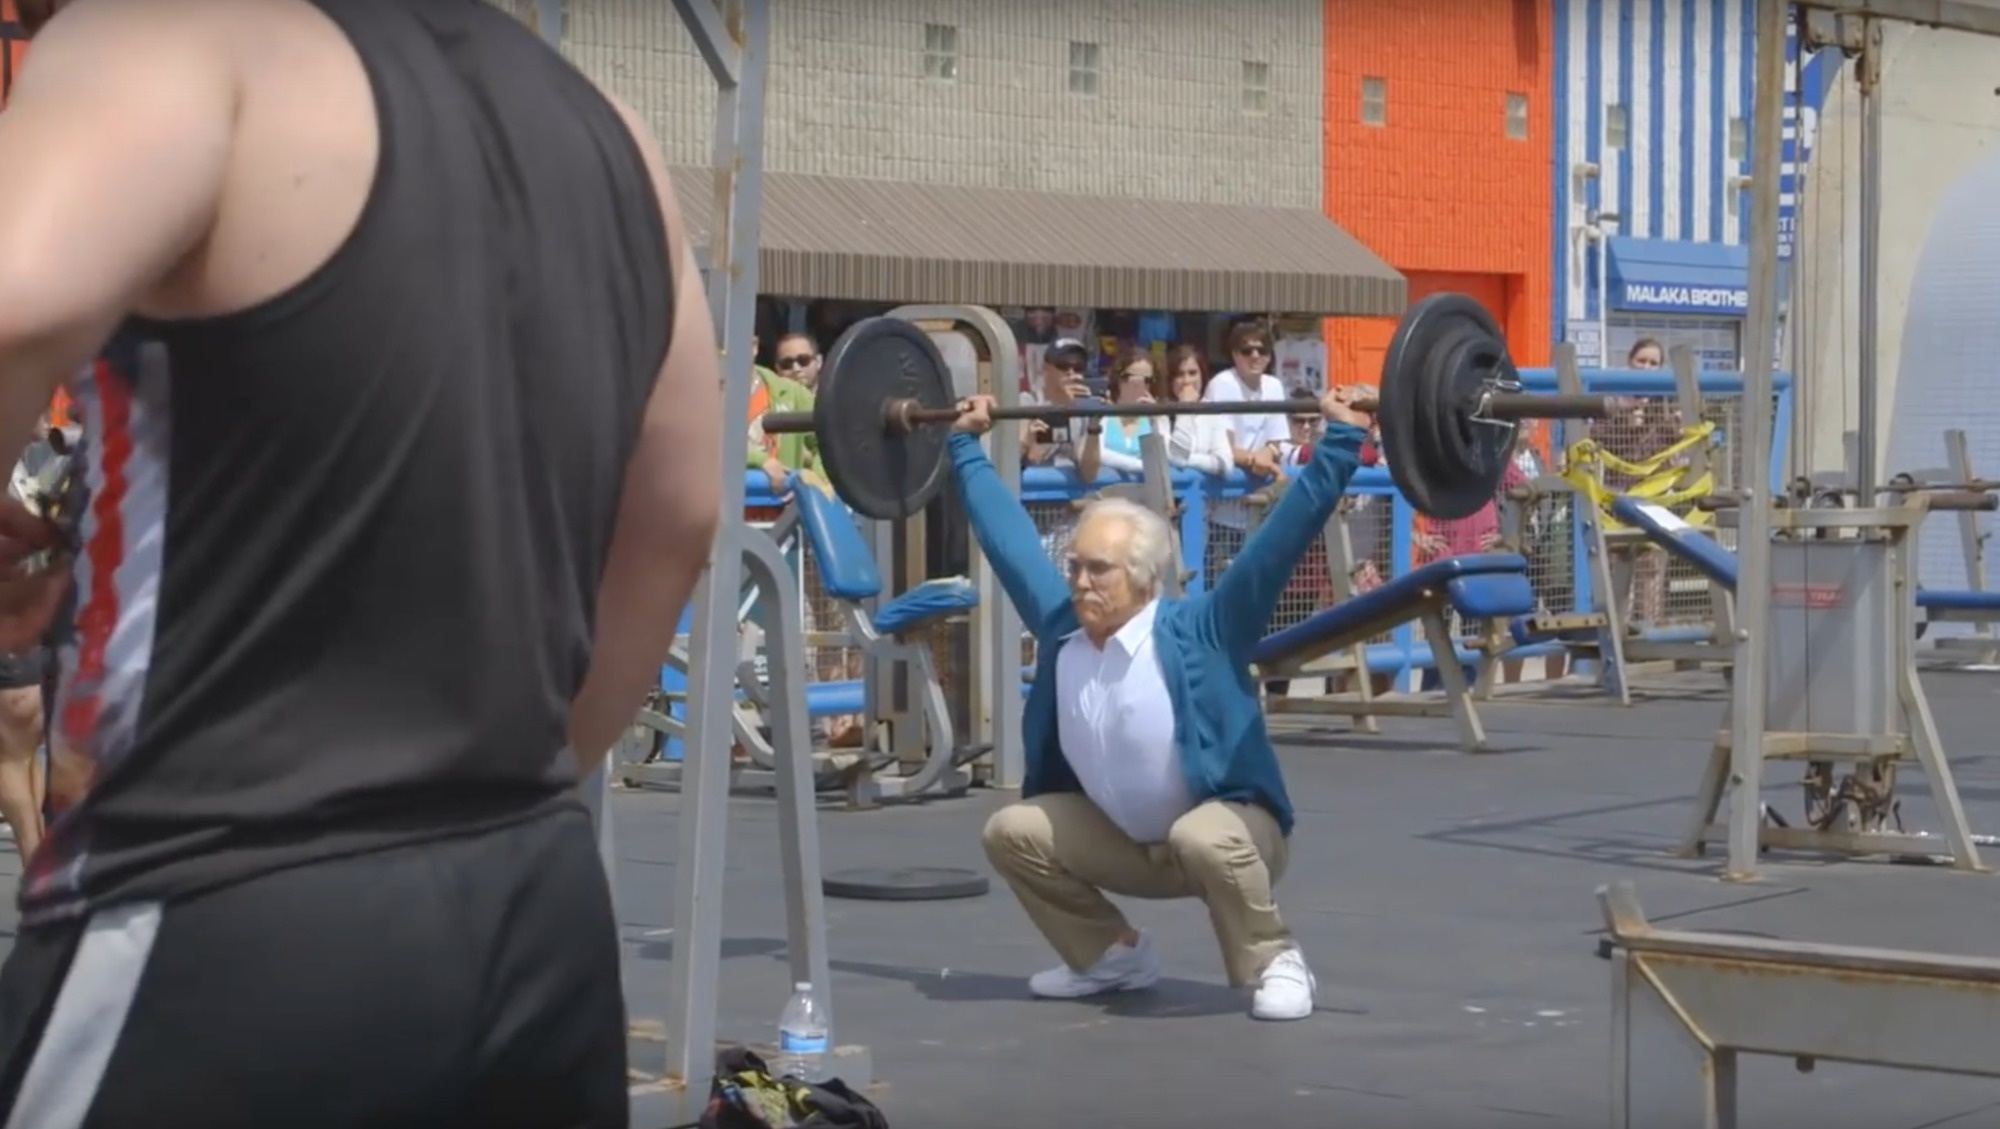 80-year-old-weightlifters-v2